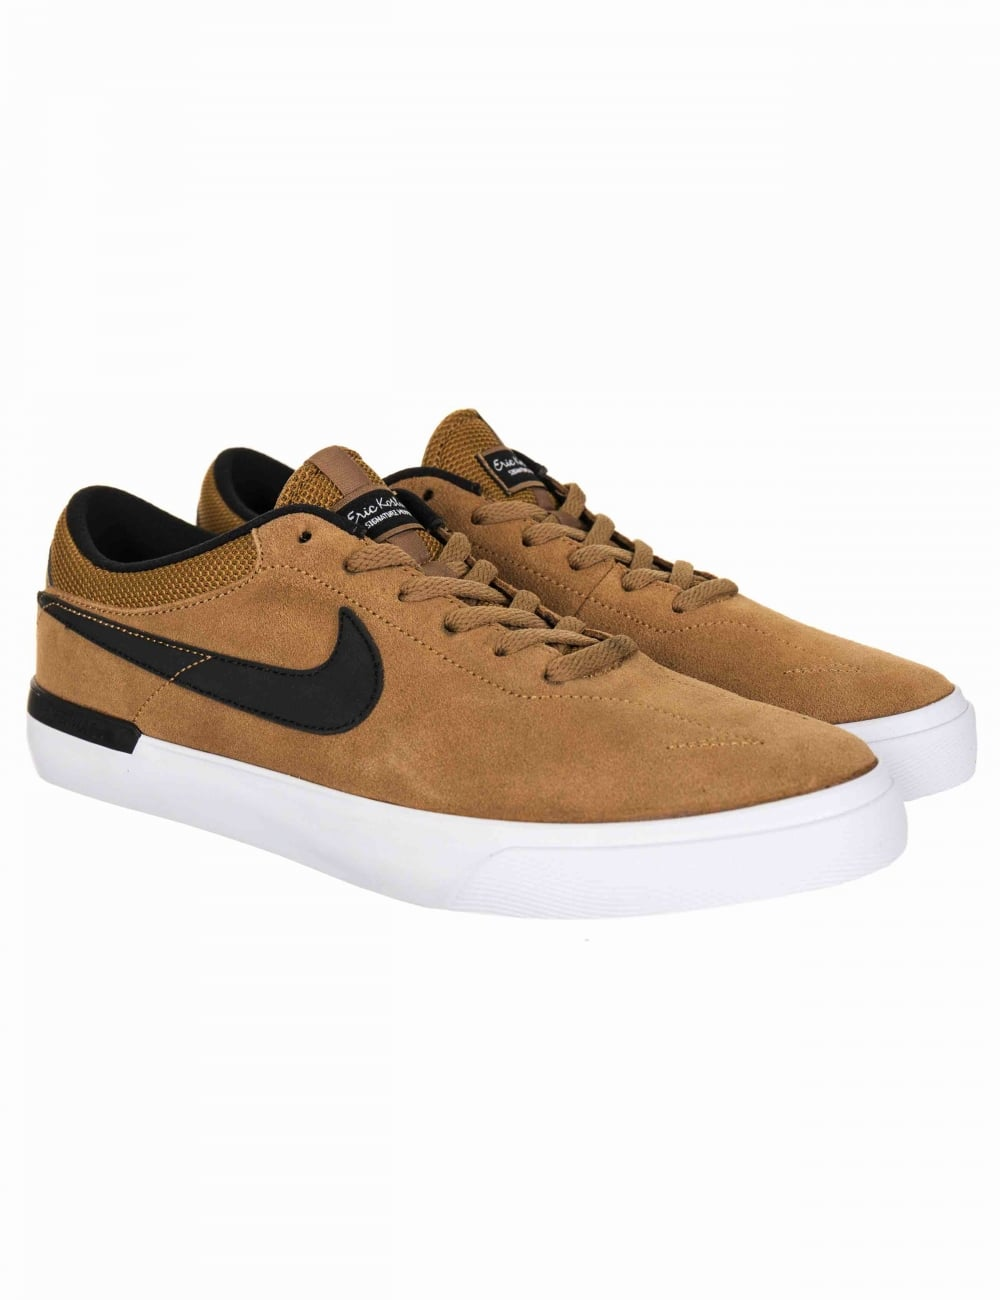 Nike SB Eric Koston Hypervulc Trainers - Golden Beige Black ... 9ee0dce86